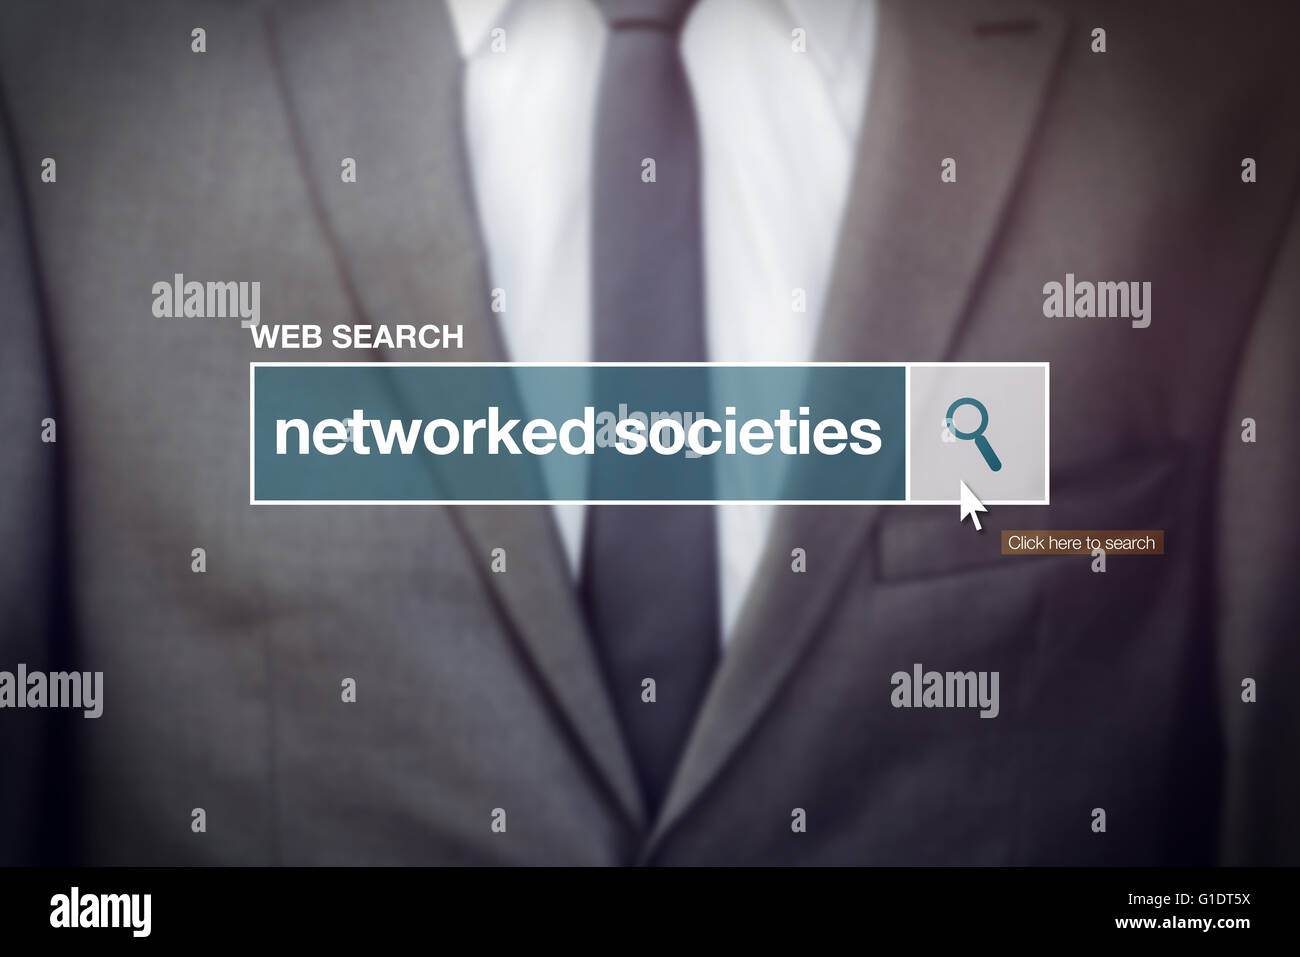 Networked societies web search bar glossary term on internet - Stock Image